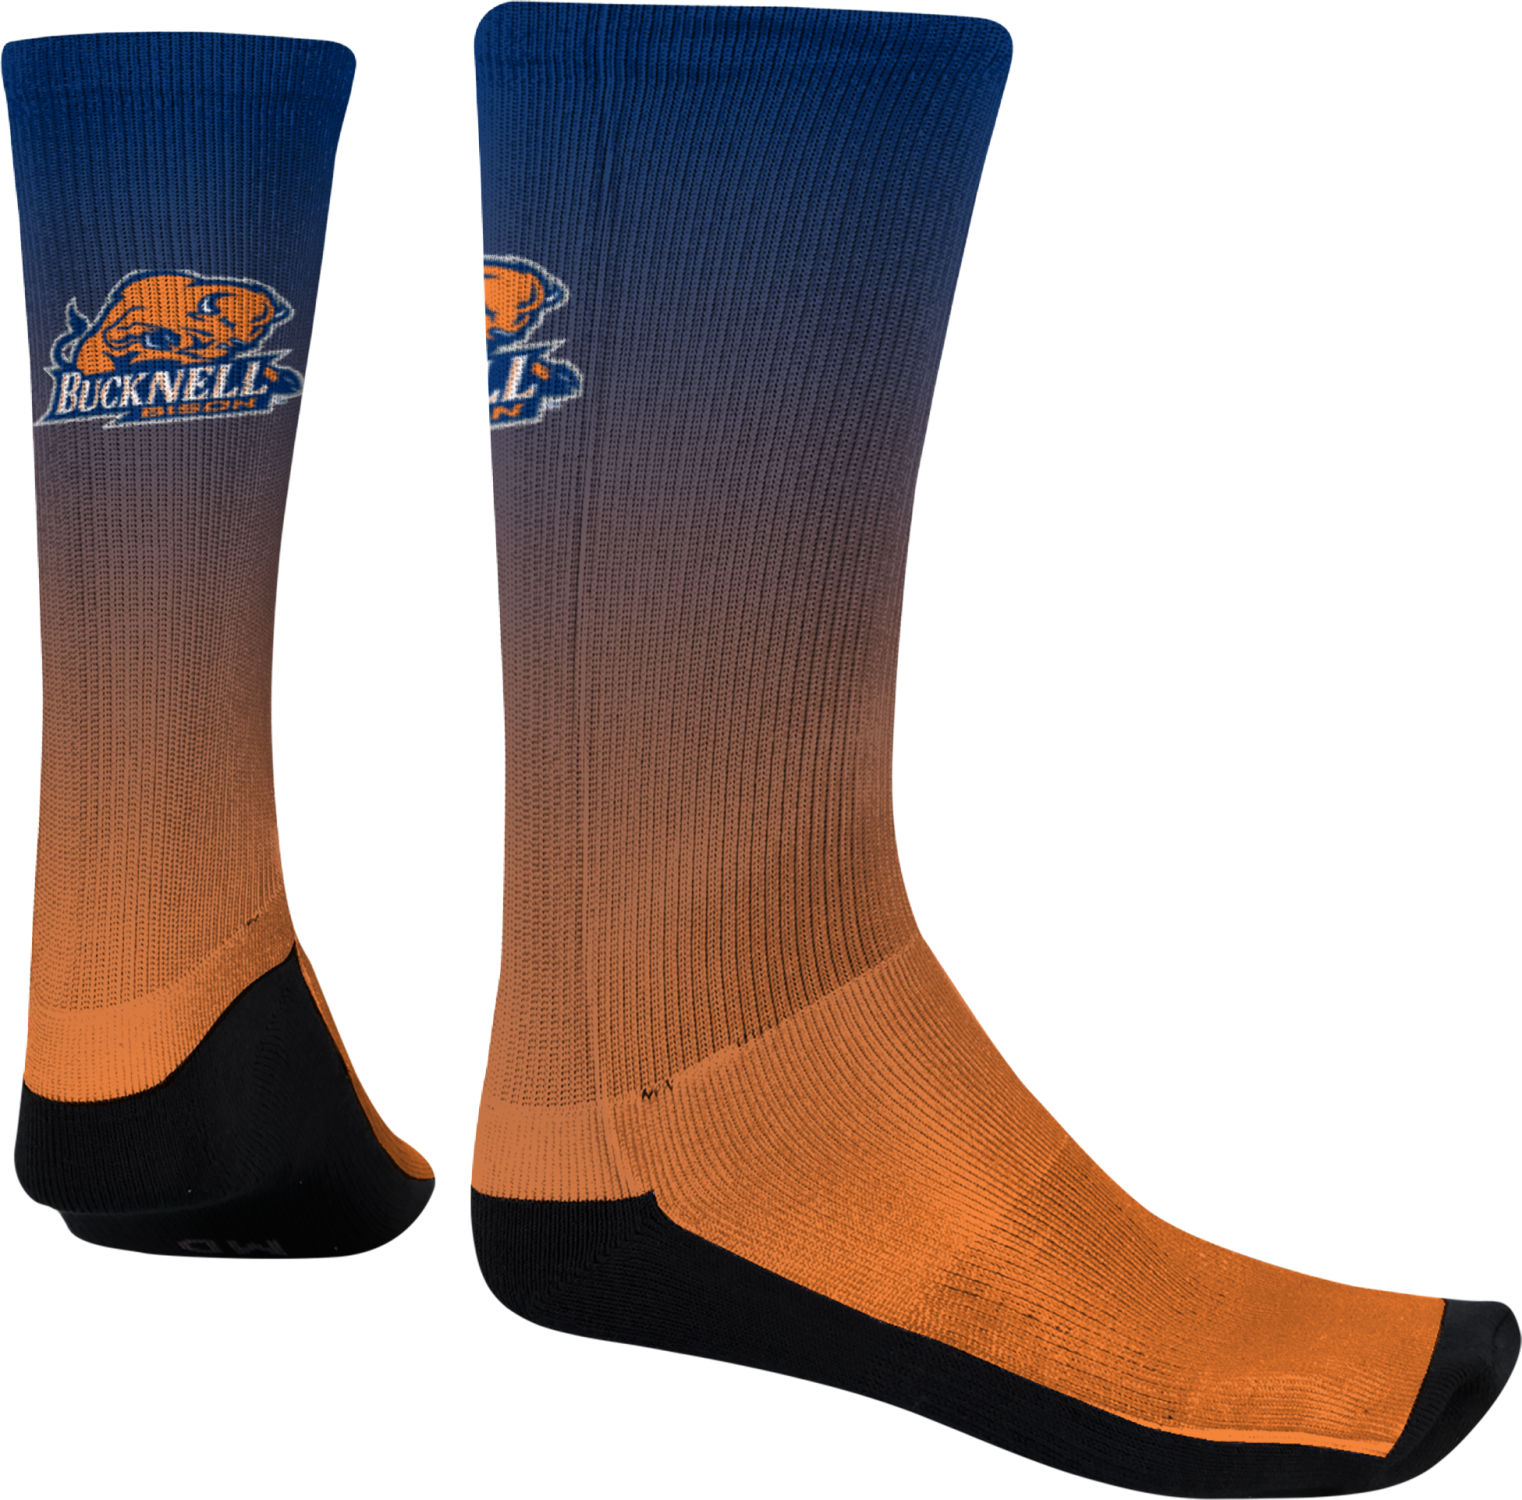 Spectrum Sublimation Men's Bucknell University Fade Sublimated Socks